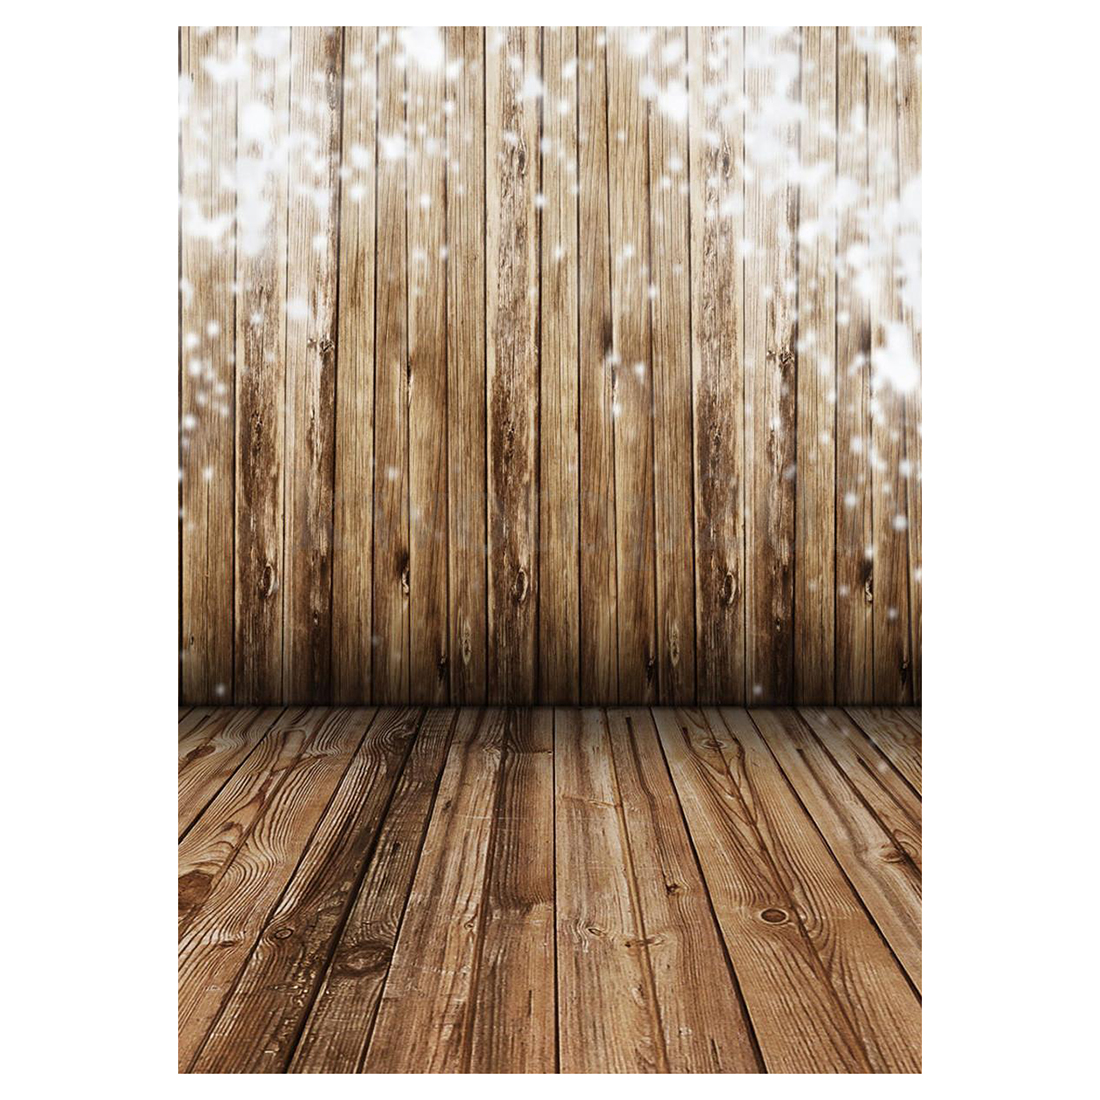 3X5FT Wood Wall Floor Vinyl Photography Backdrop Photo Background Studio Props huayi 4pc 2x2ft wood floor brick wall backdrop vinyl photography backdrops photo props background small object shooting gy 019